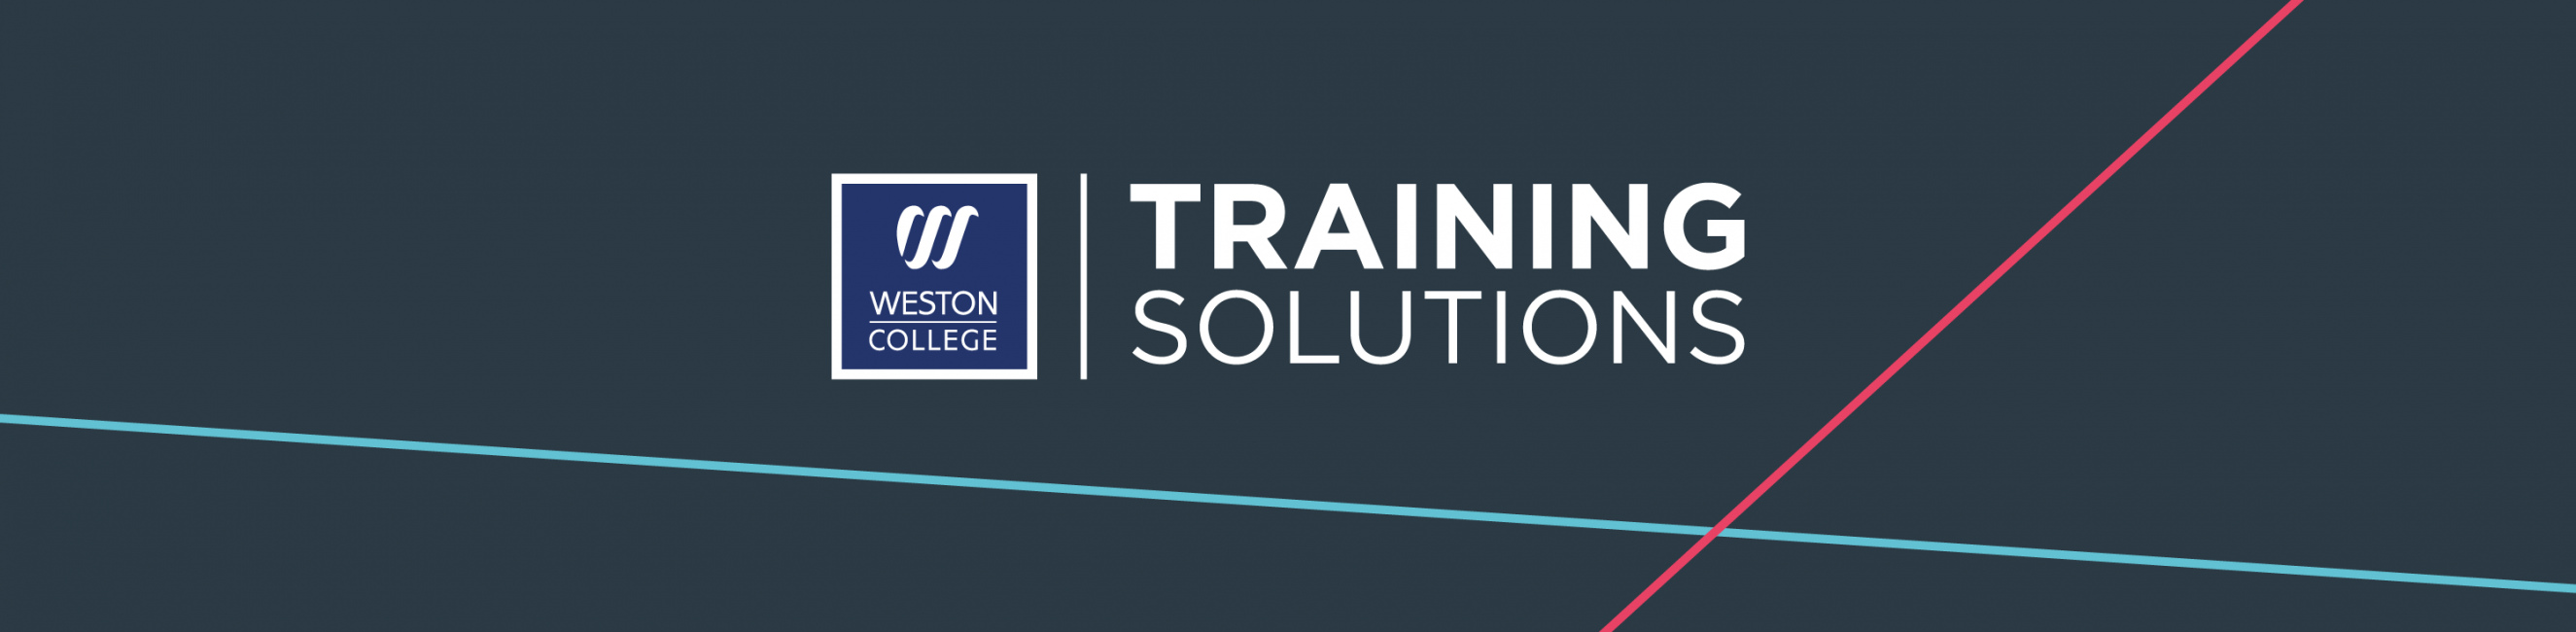 Weston College Training Solutions